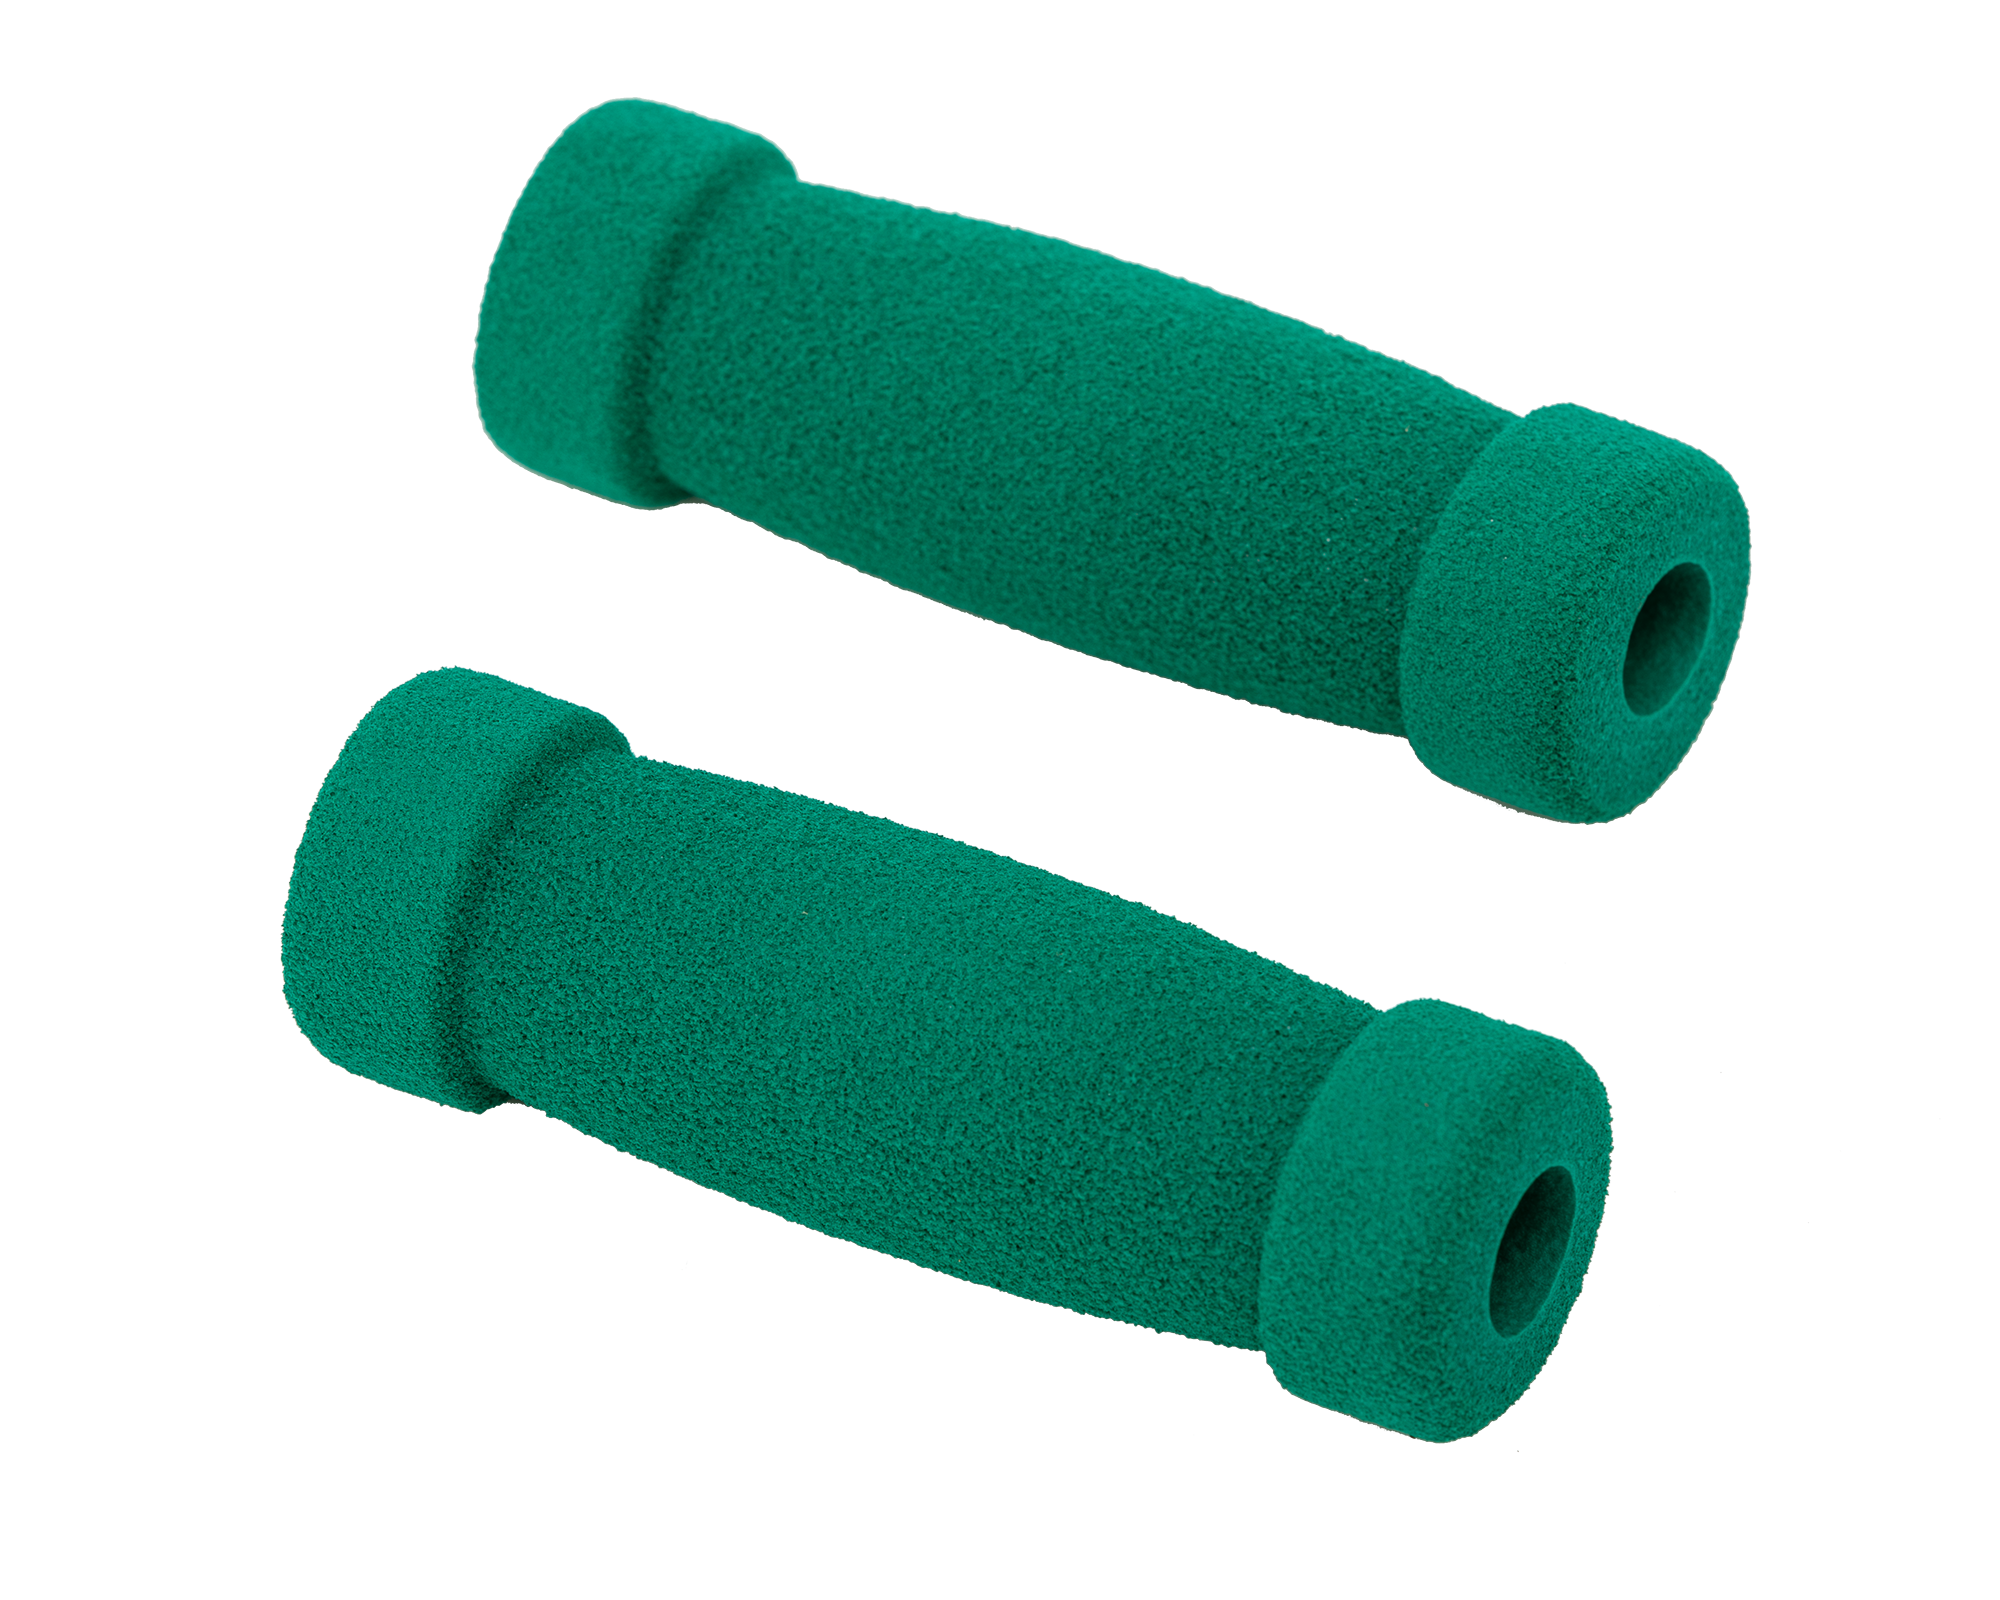 Razor Foam Handlebar Grip - Green, Set of 2